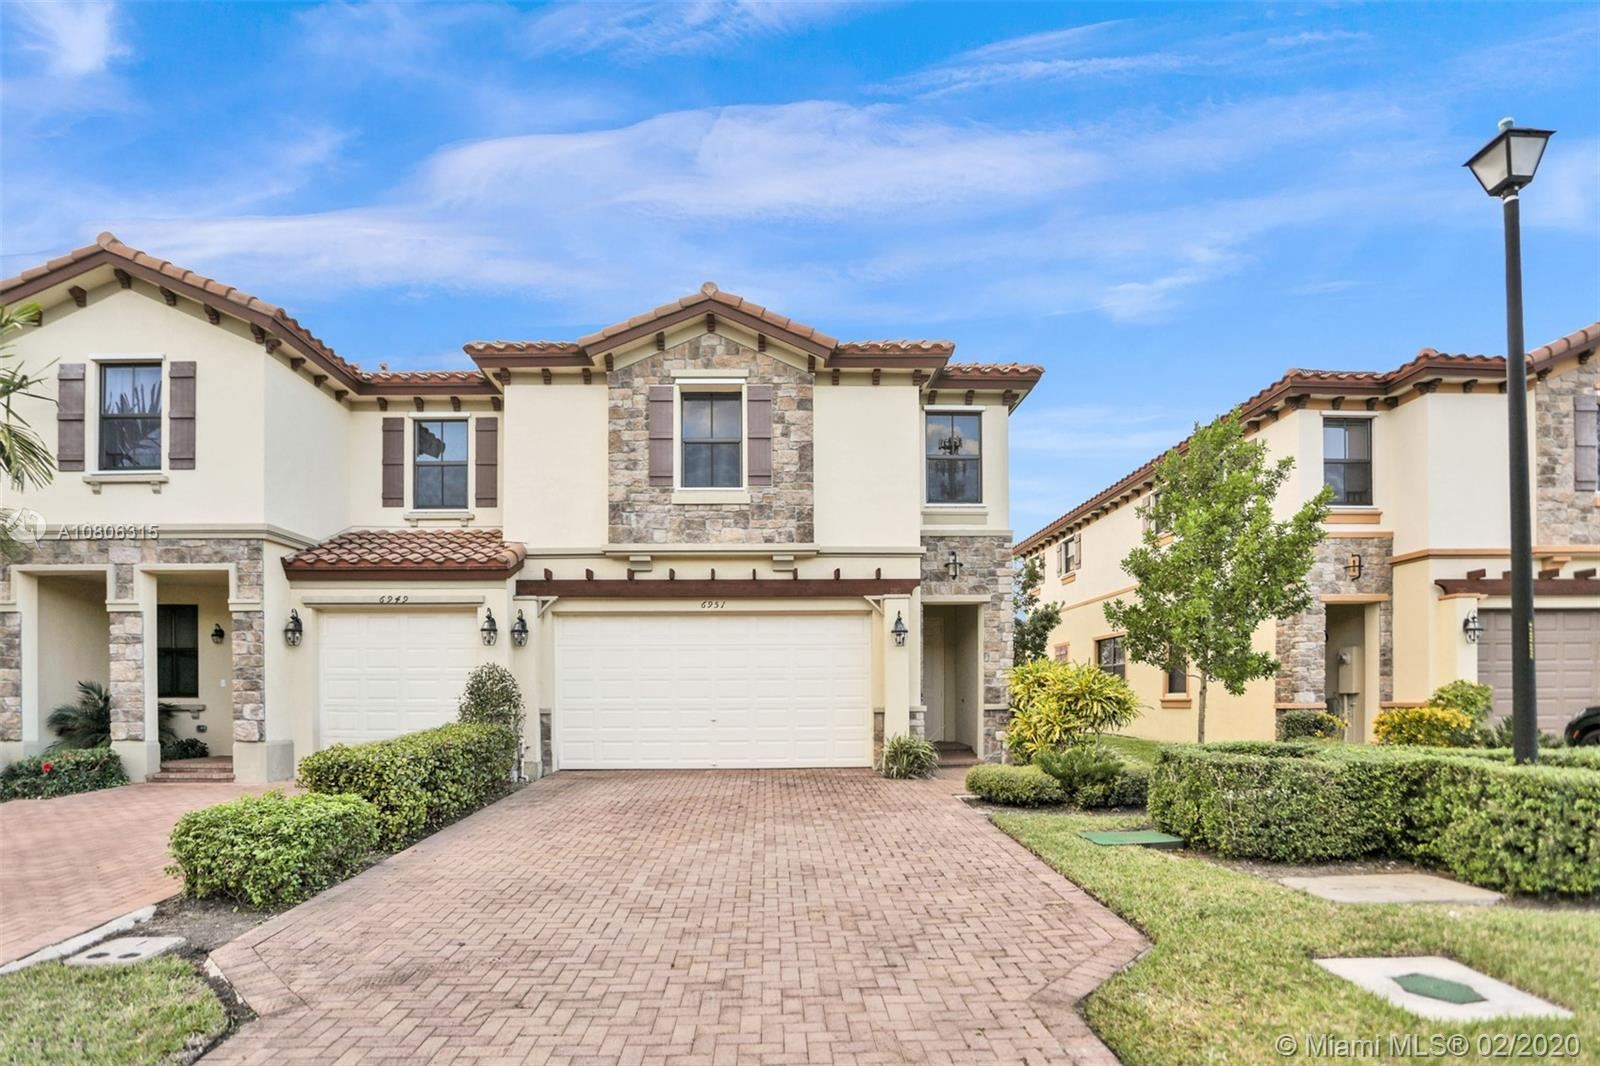 6951 Halton Park Ln, Coconut Creek, FL 33073 - #: A10806315